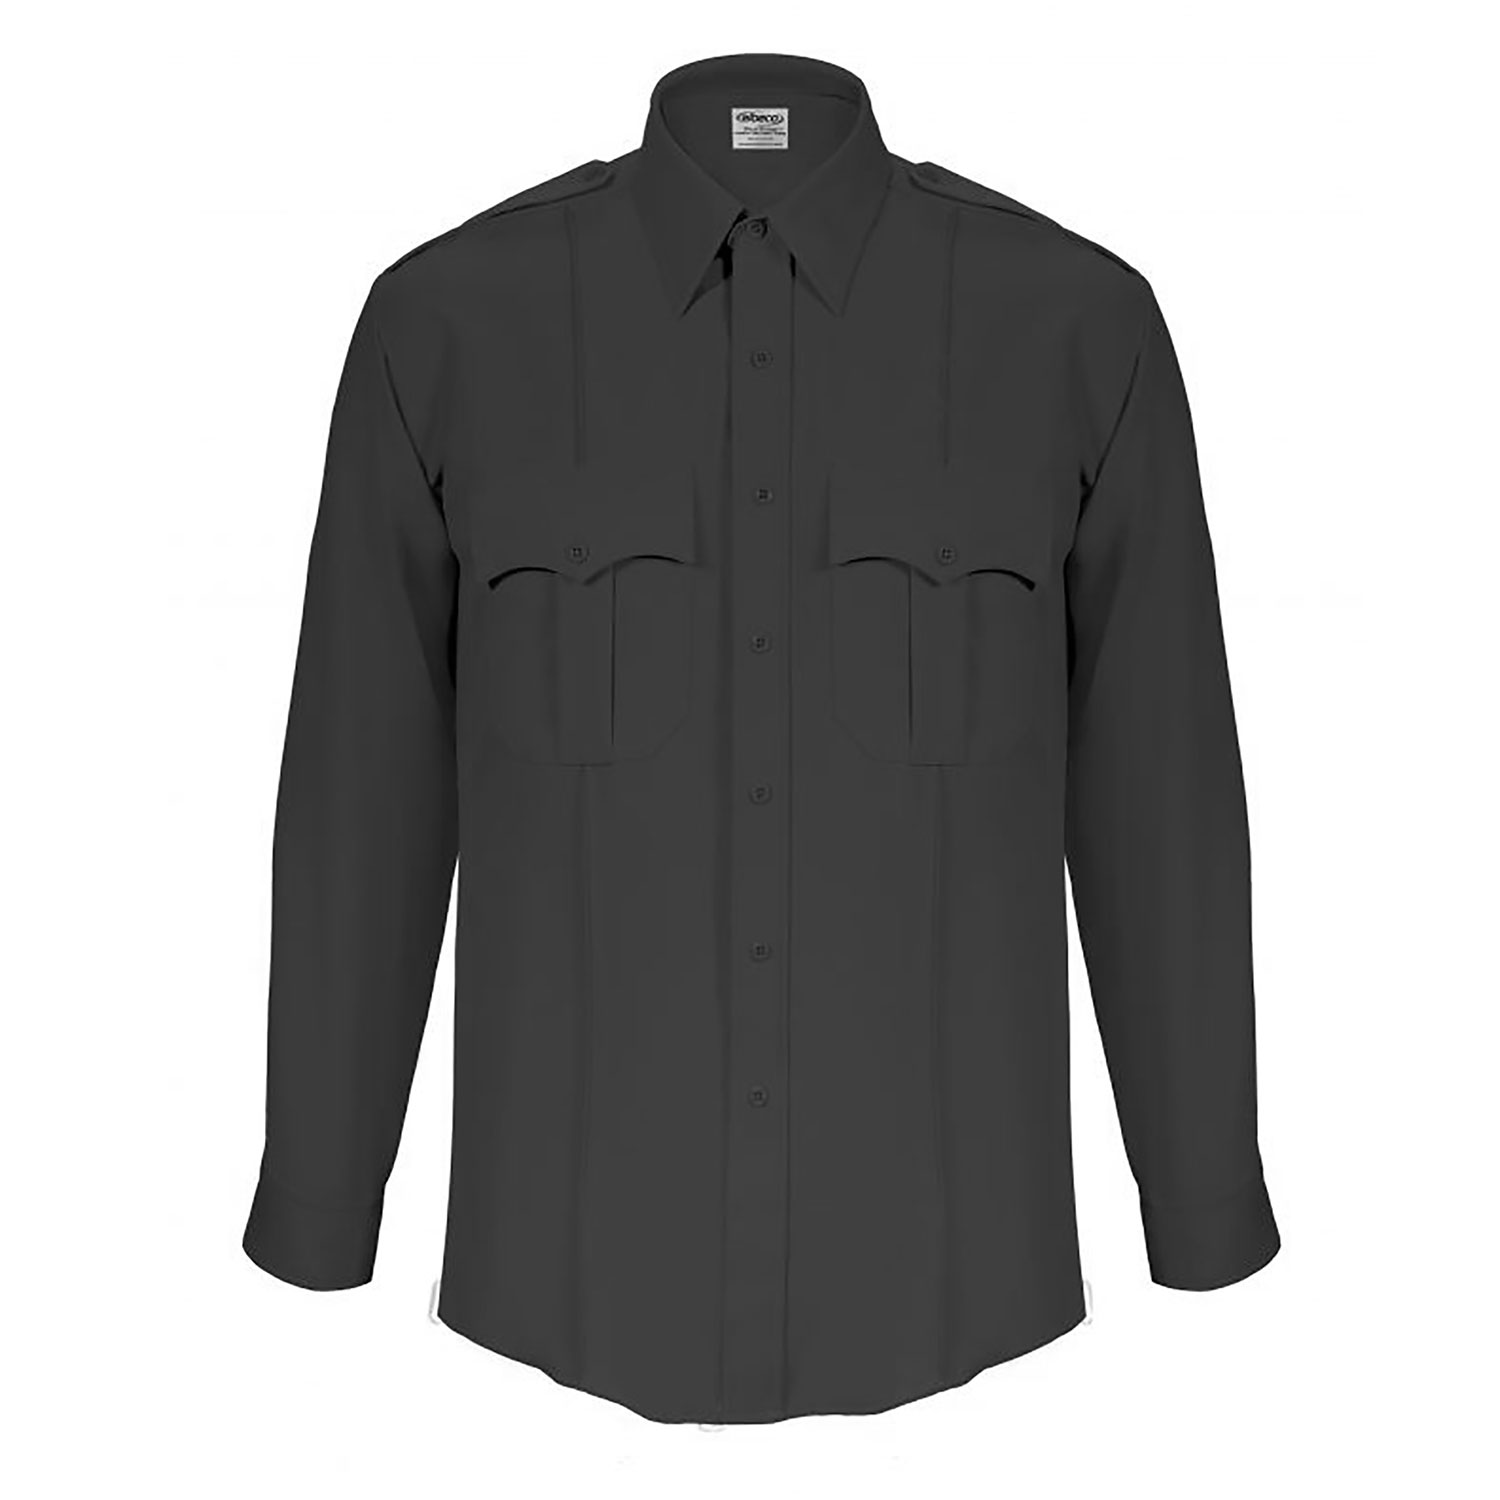 Elbeco Tex Trop Long Sleeve Class Shirt with Zipper